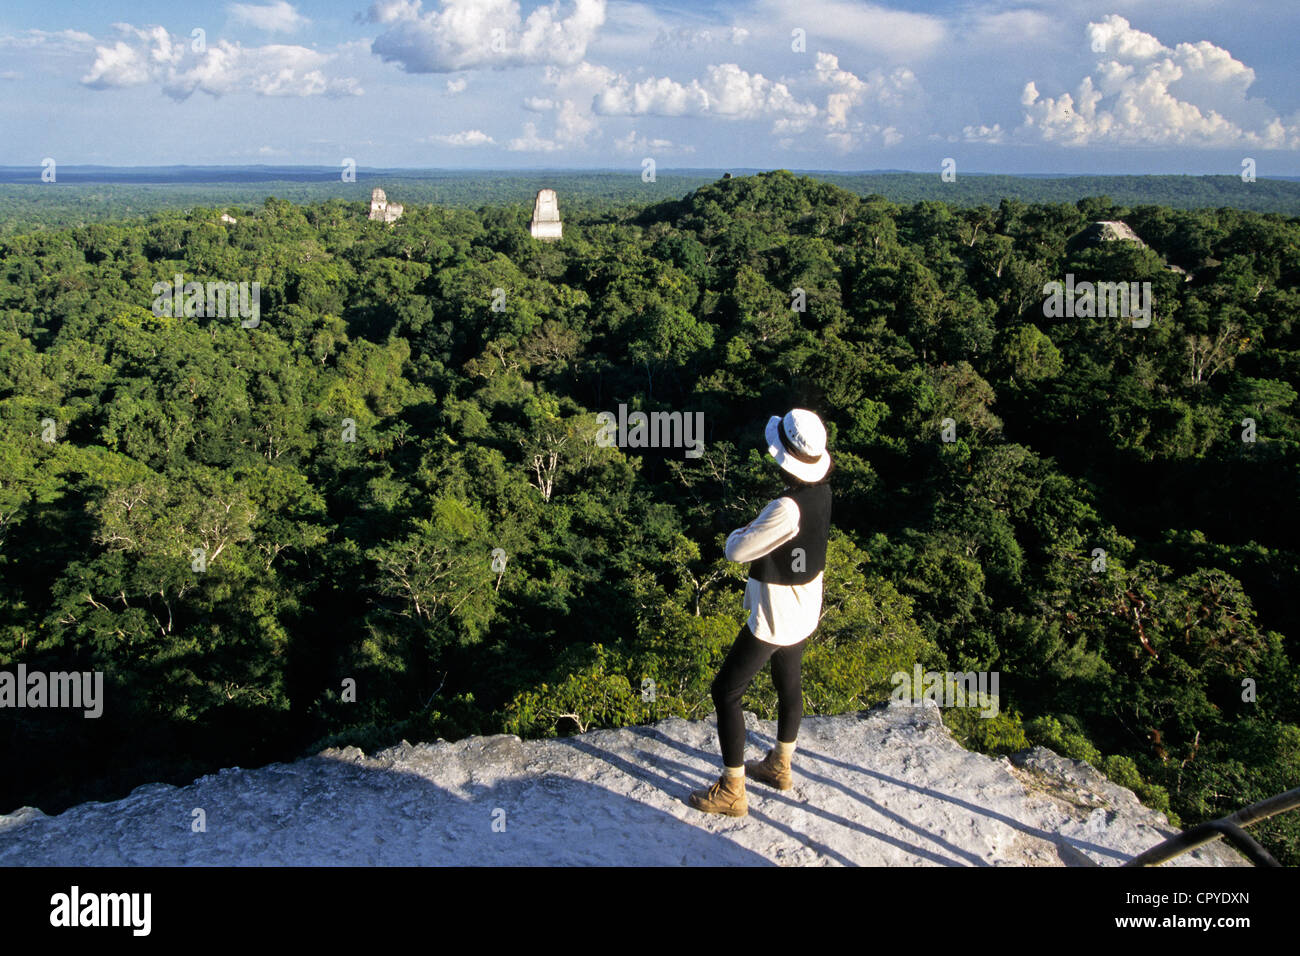 Guatemala, Peten Department, Tikal National Park, site UNESCO World Heritage, more than 4000 structures and maya - Stock Image